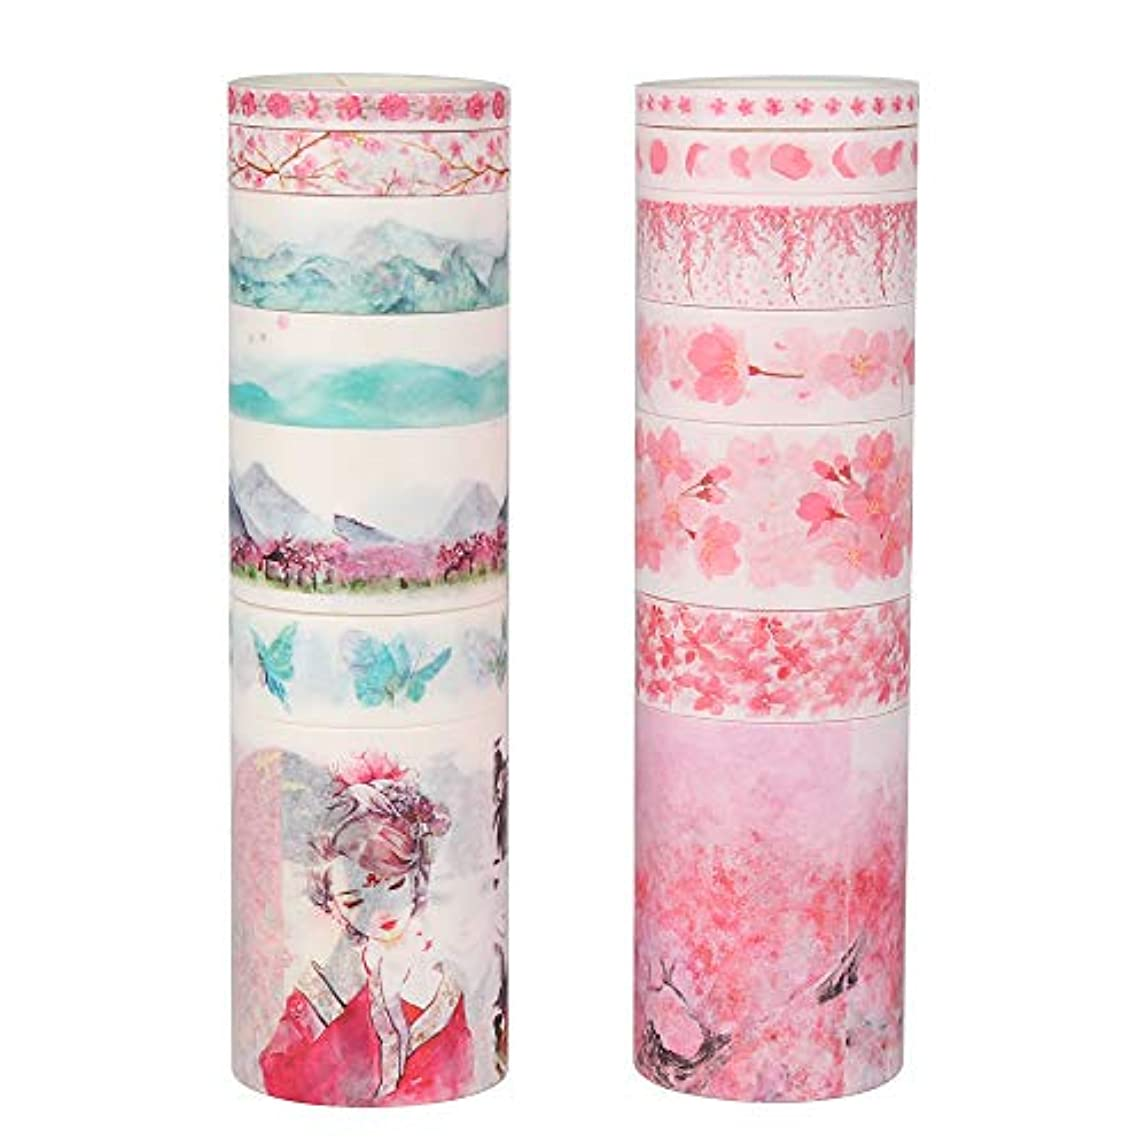 Molshine 16Rolls(Length 6.6ft/Roll) Washi Masking Tape Set,Adhesive Paper,Crafts Tape for DIY,Planners,Scrapbook,Object Decorative,Collection,Gift Wrapping-Cherry Blossom Girl Series mfrok36831841002